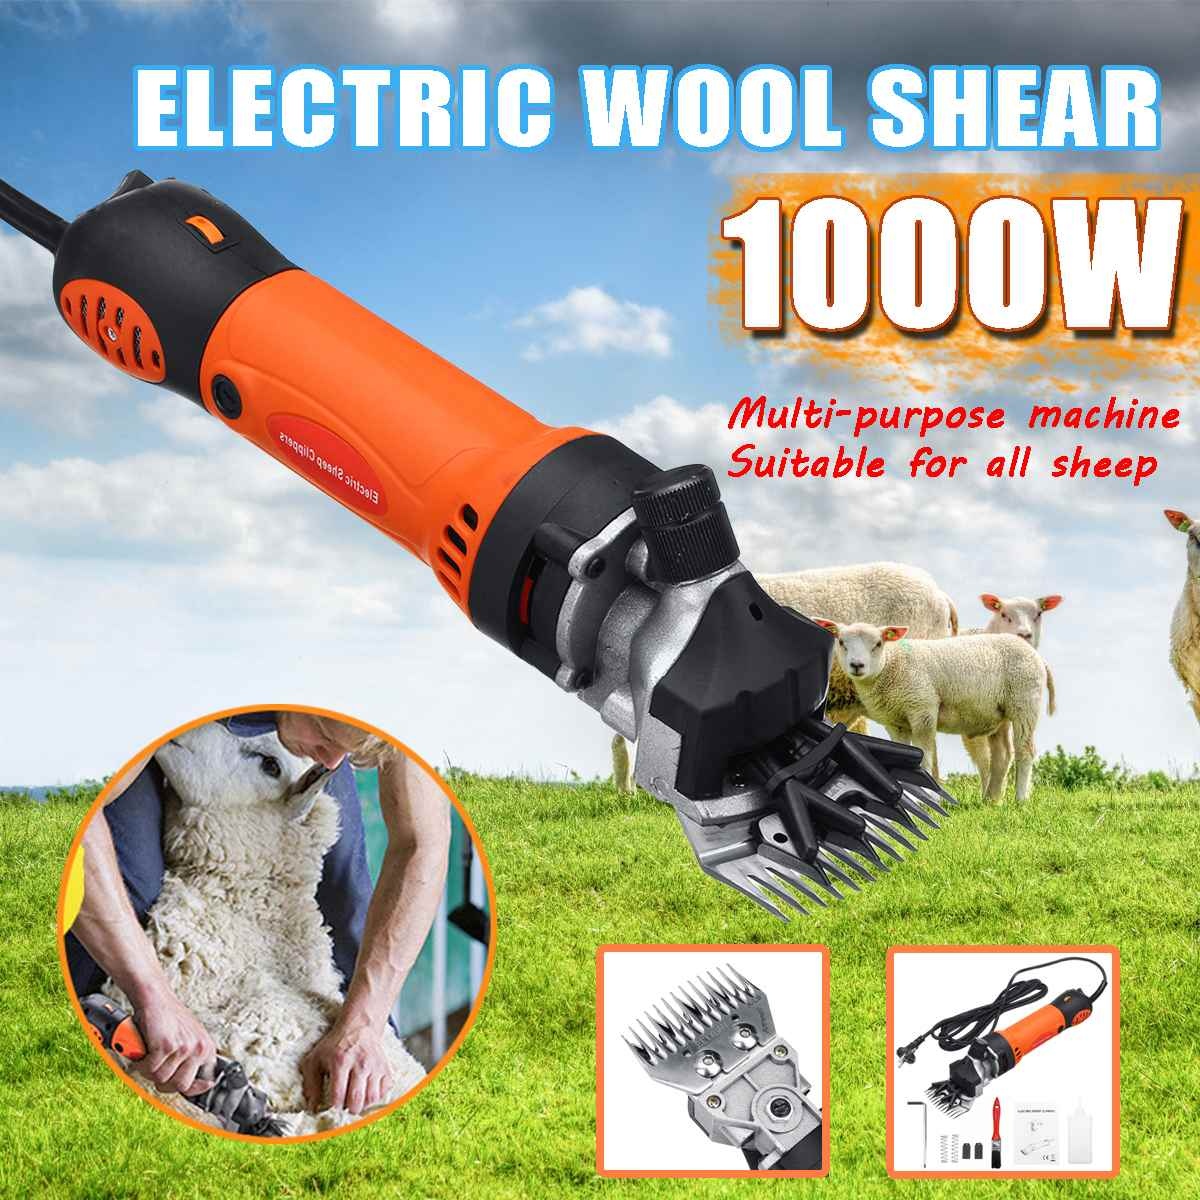 1000W 220V Electric Shearing Clipper Shear Sheep Goats Alpaca Shears Pet Hair Shearing Machine Cutter Wool Scissor Farm Supplies